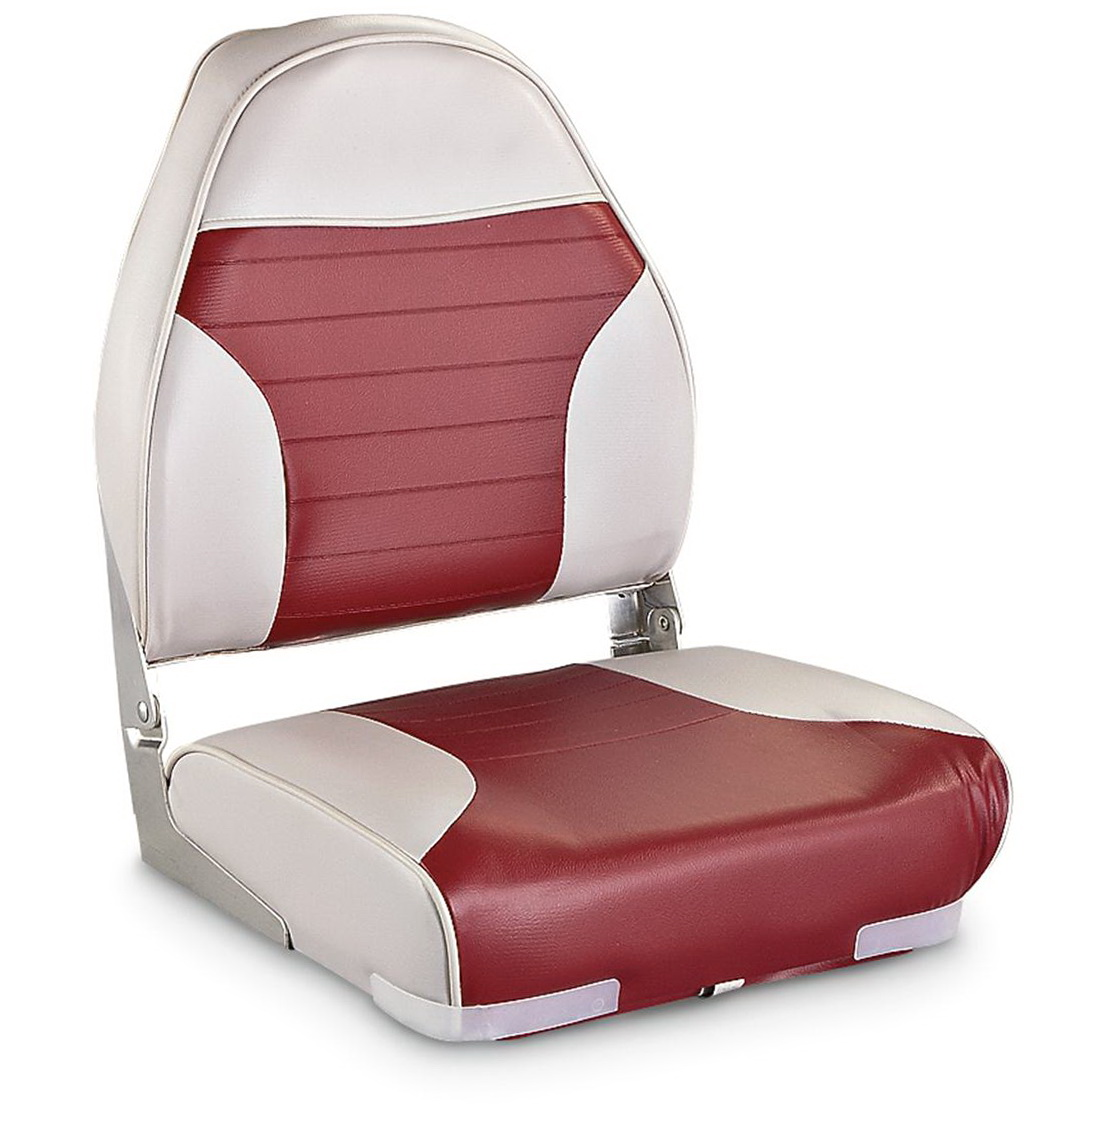 canoe chairs walmart ergonomic office chair malaysia boat seat cushions home design ideas